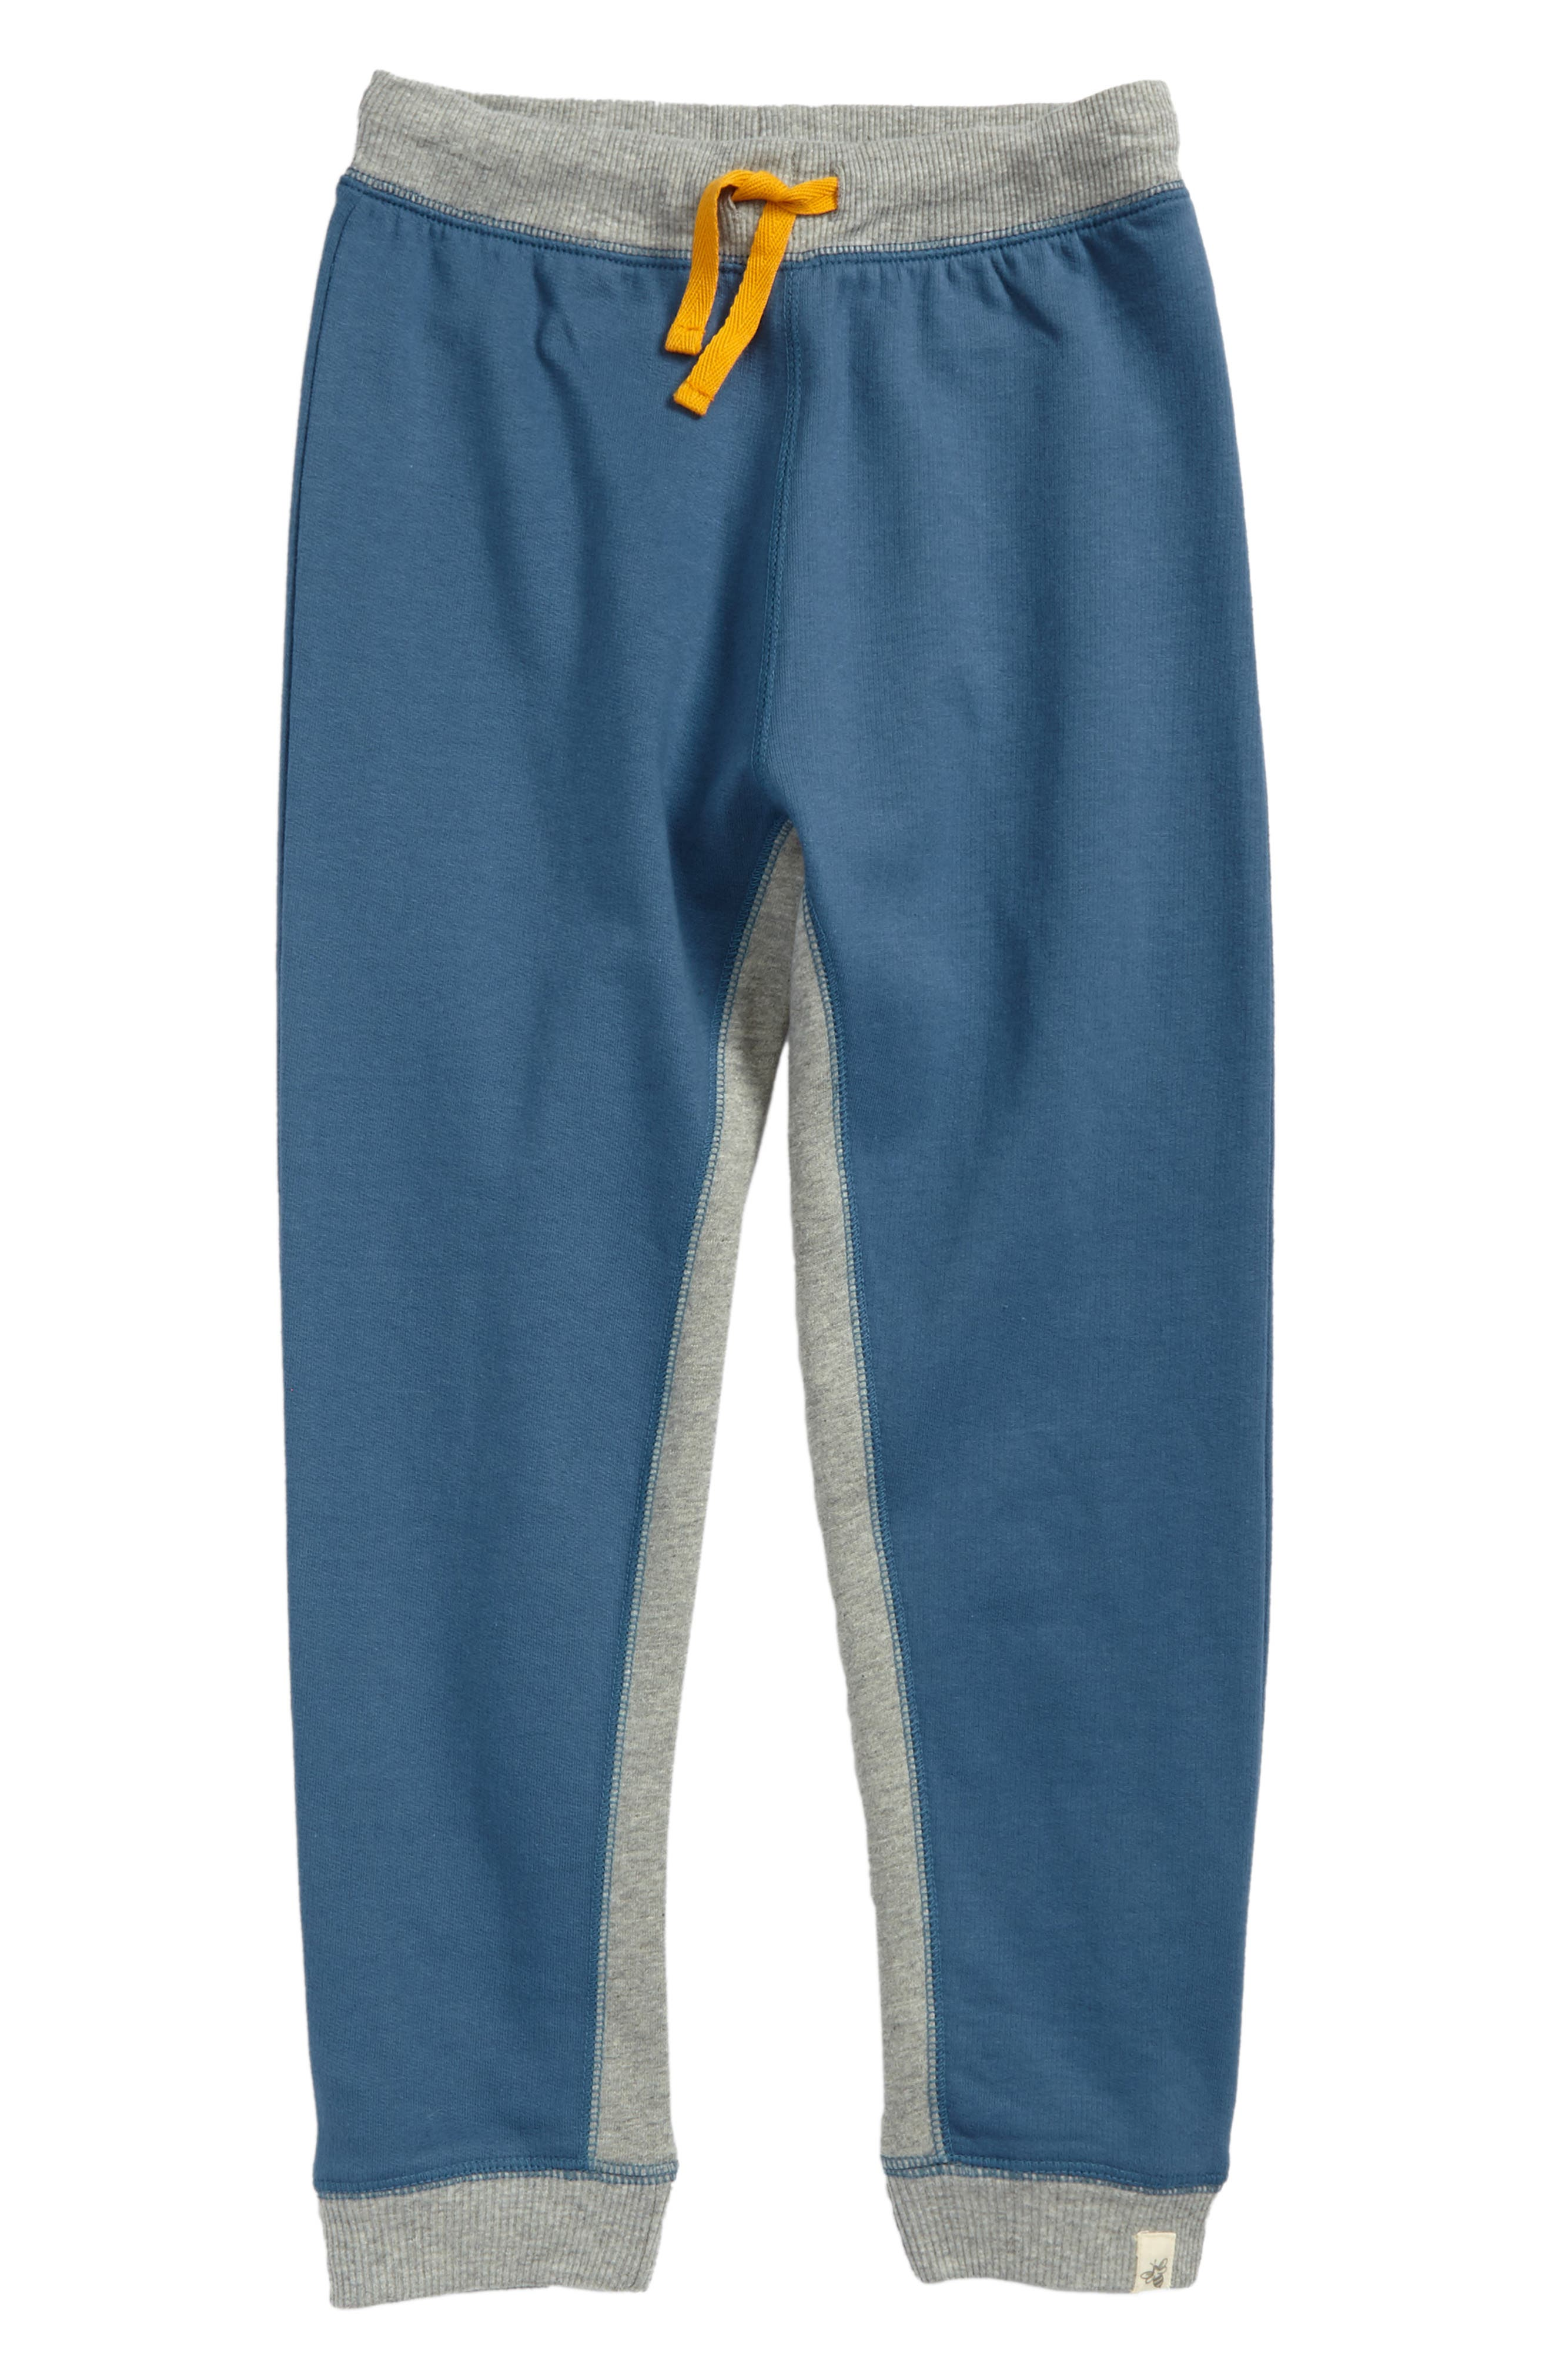 Burt's Bees Baby Sweatpants (Toddler Boys & Little Boys)